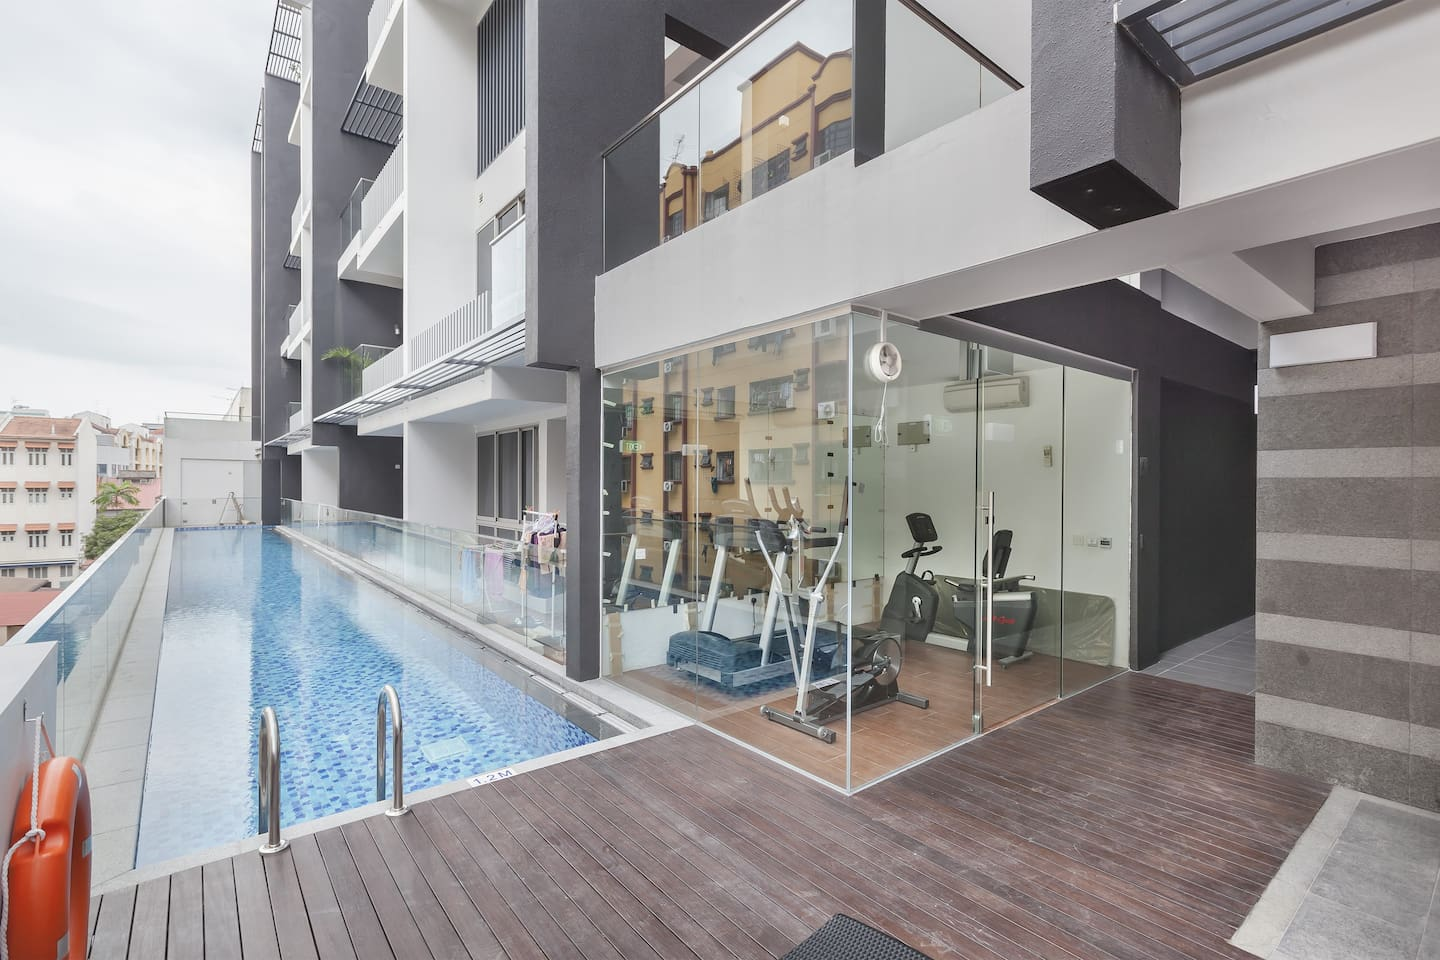 brand new apartment near the city singapore airbnb cool office design train tracks